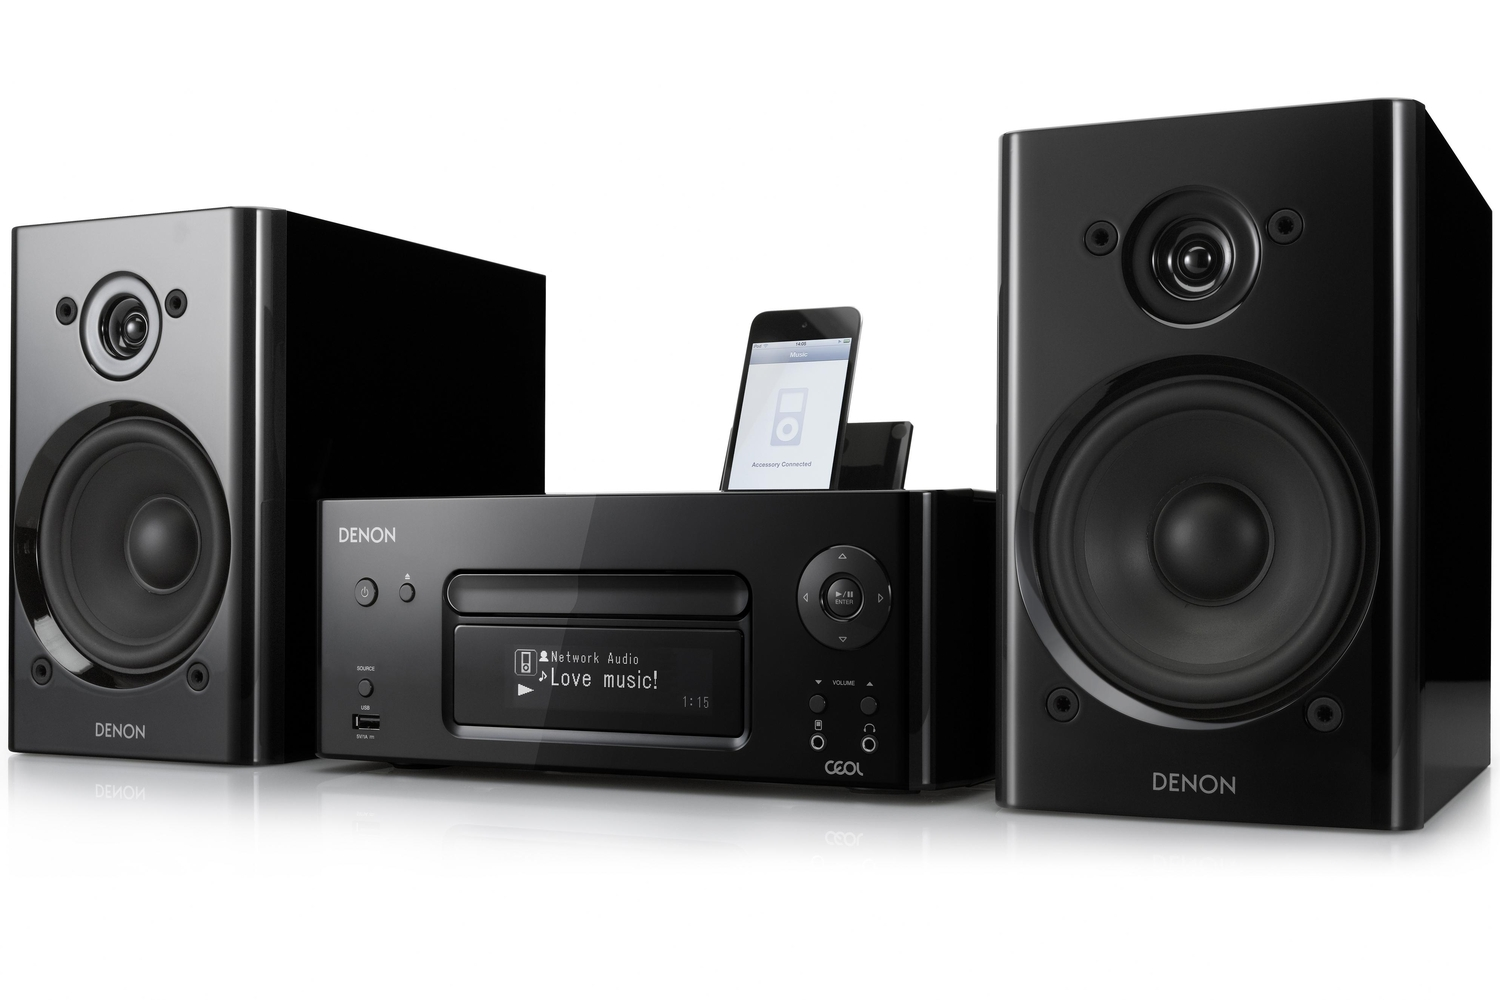 denon ceol review this mini hi fi suits the wi fi ipod toting generation front page pc. Black Bedroom Furniture Sets. Home Design Ideas